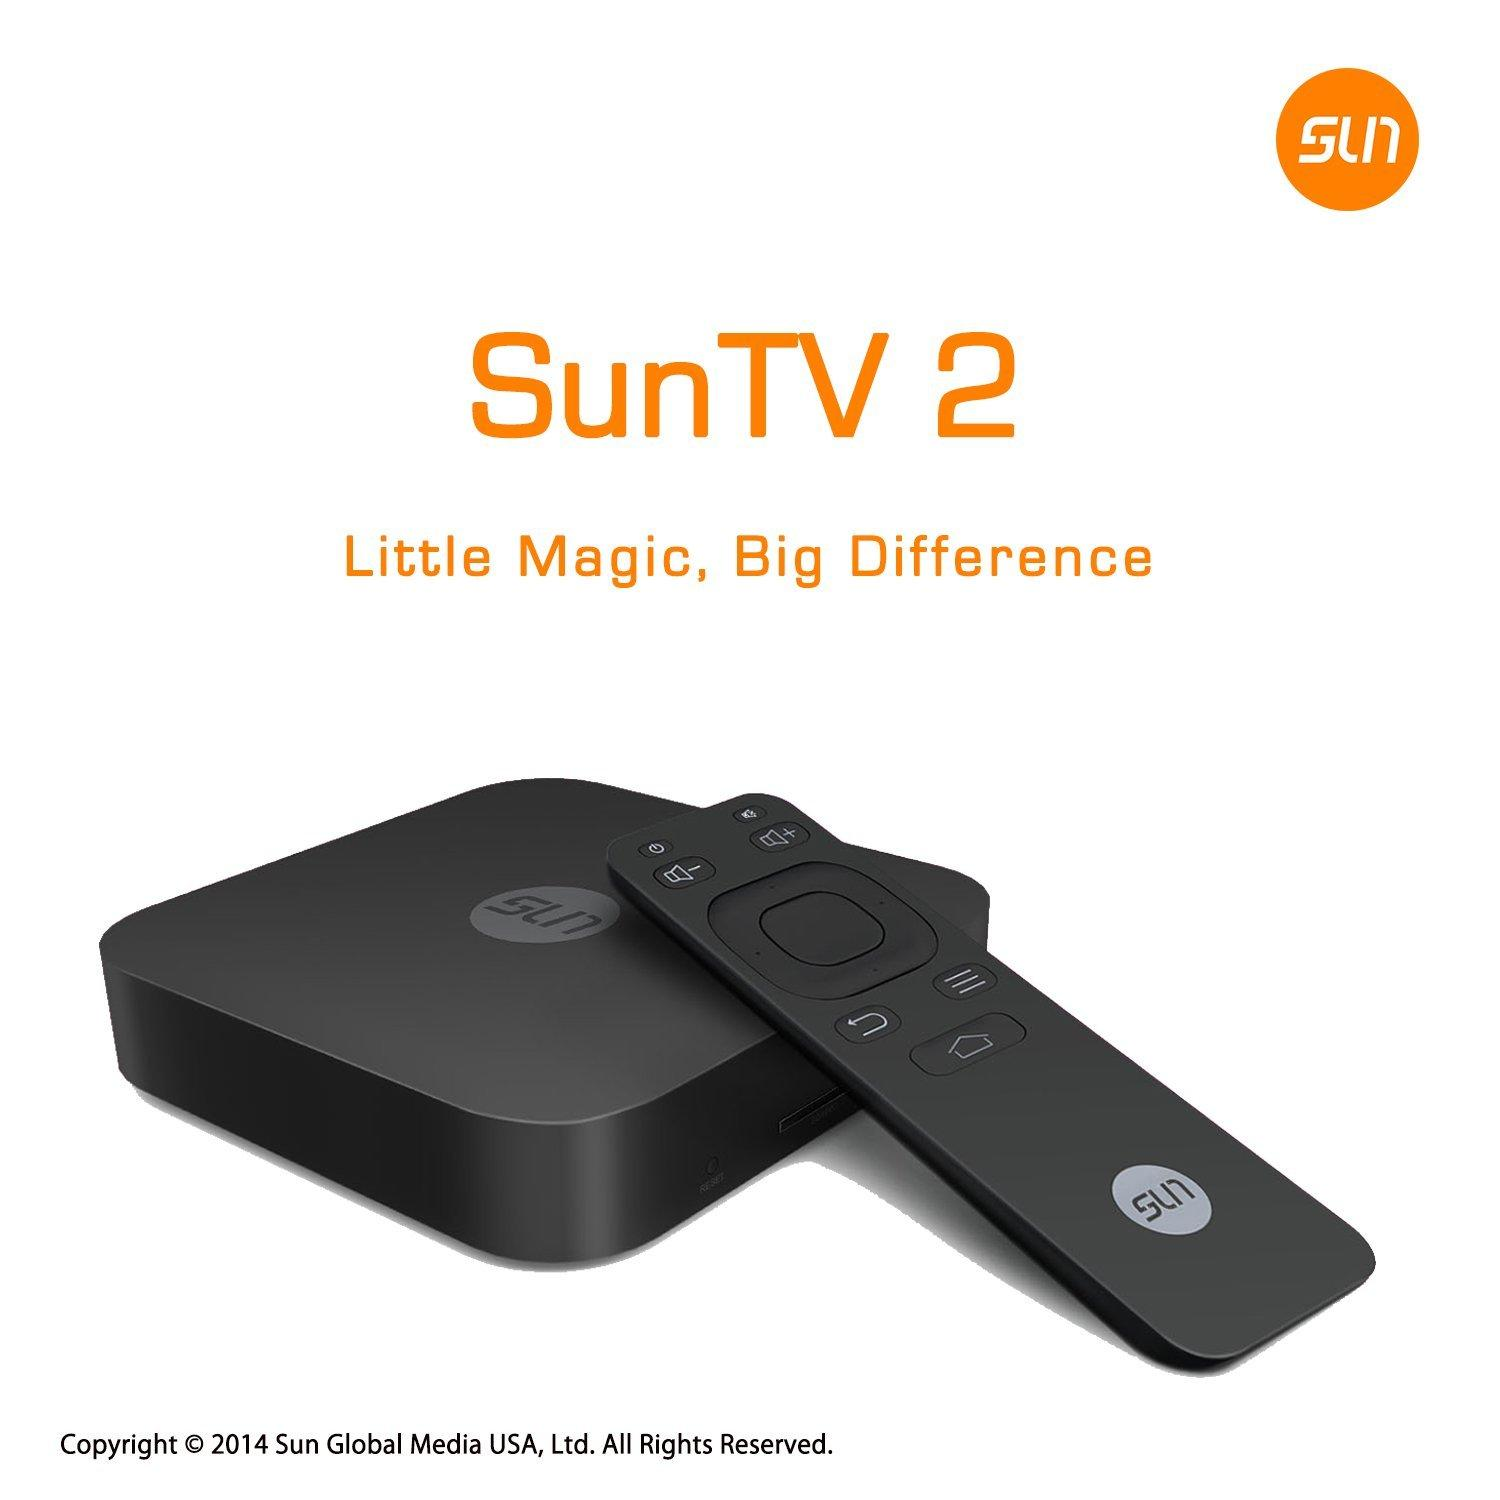 $168 + Free Shipping SunTV2 Chinese Set-top Box with Legalized TV Program Content